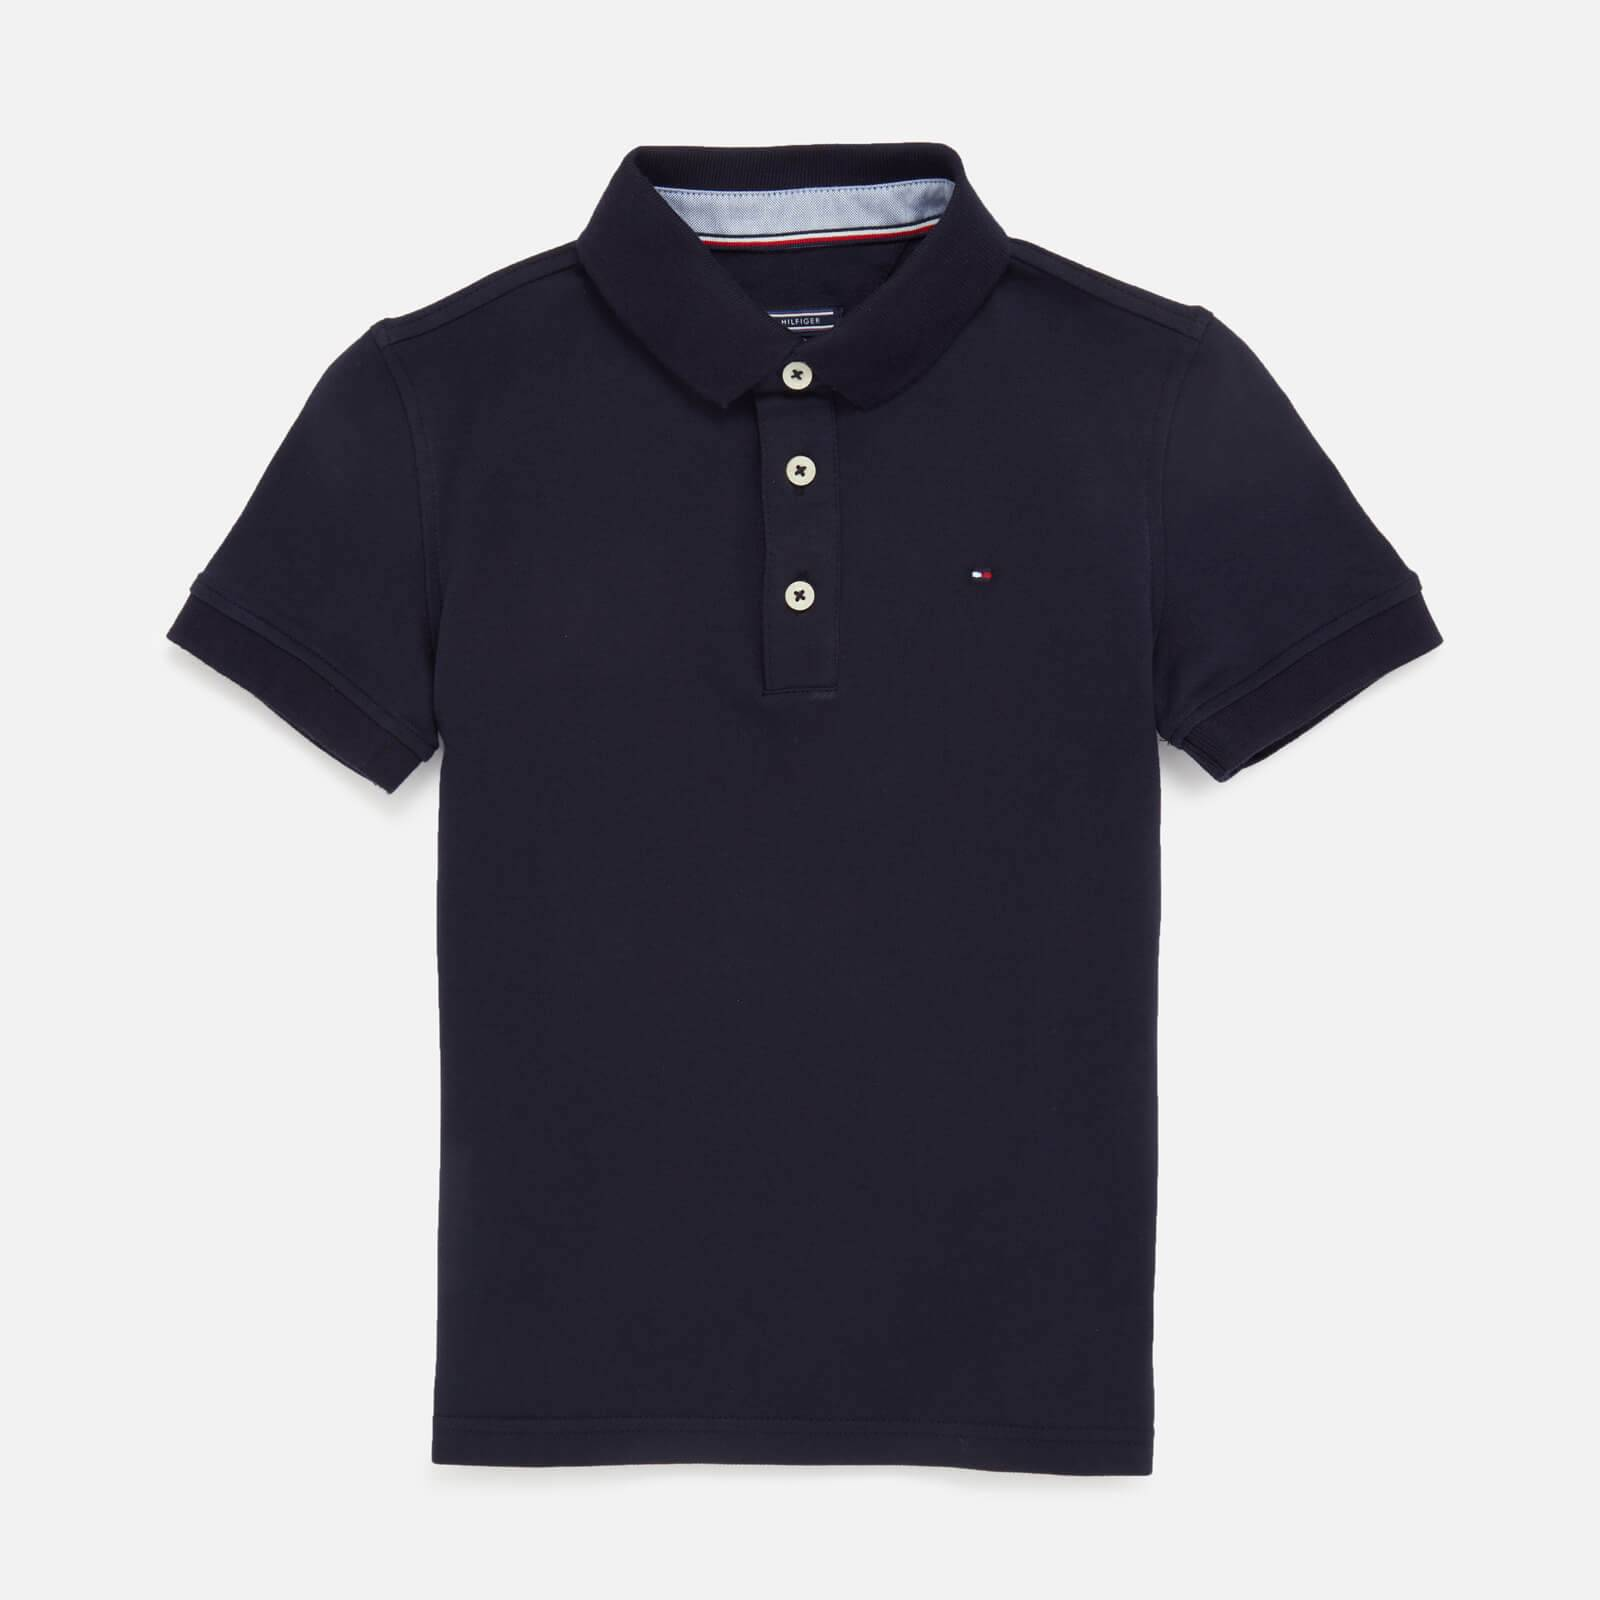 Tommy Kids Boys' Iconic Polo Shirt - Sky Captain - 12 Years